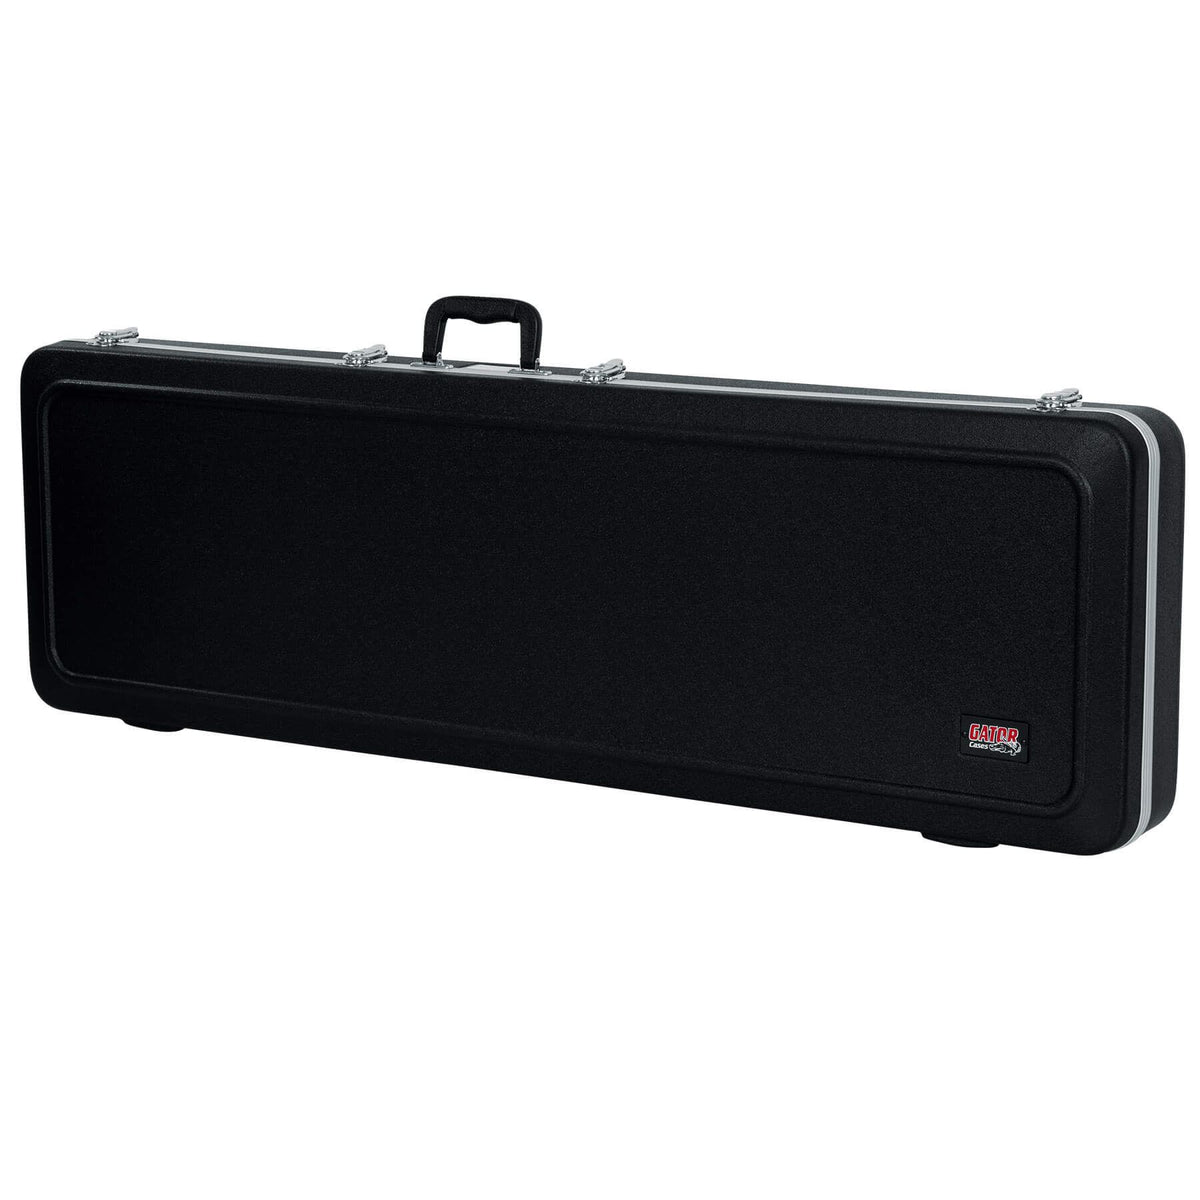 Gator Bass Guitar Case fits Fender American Standard Jazz Bass